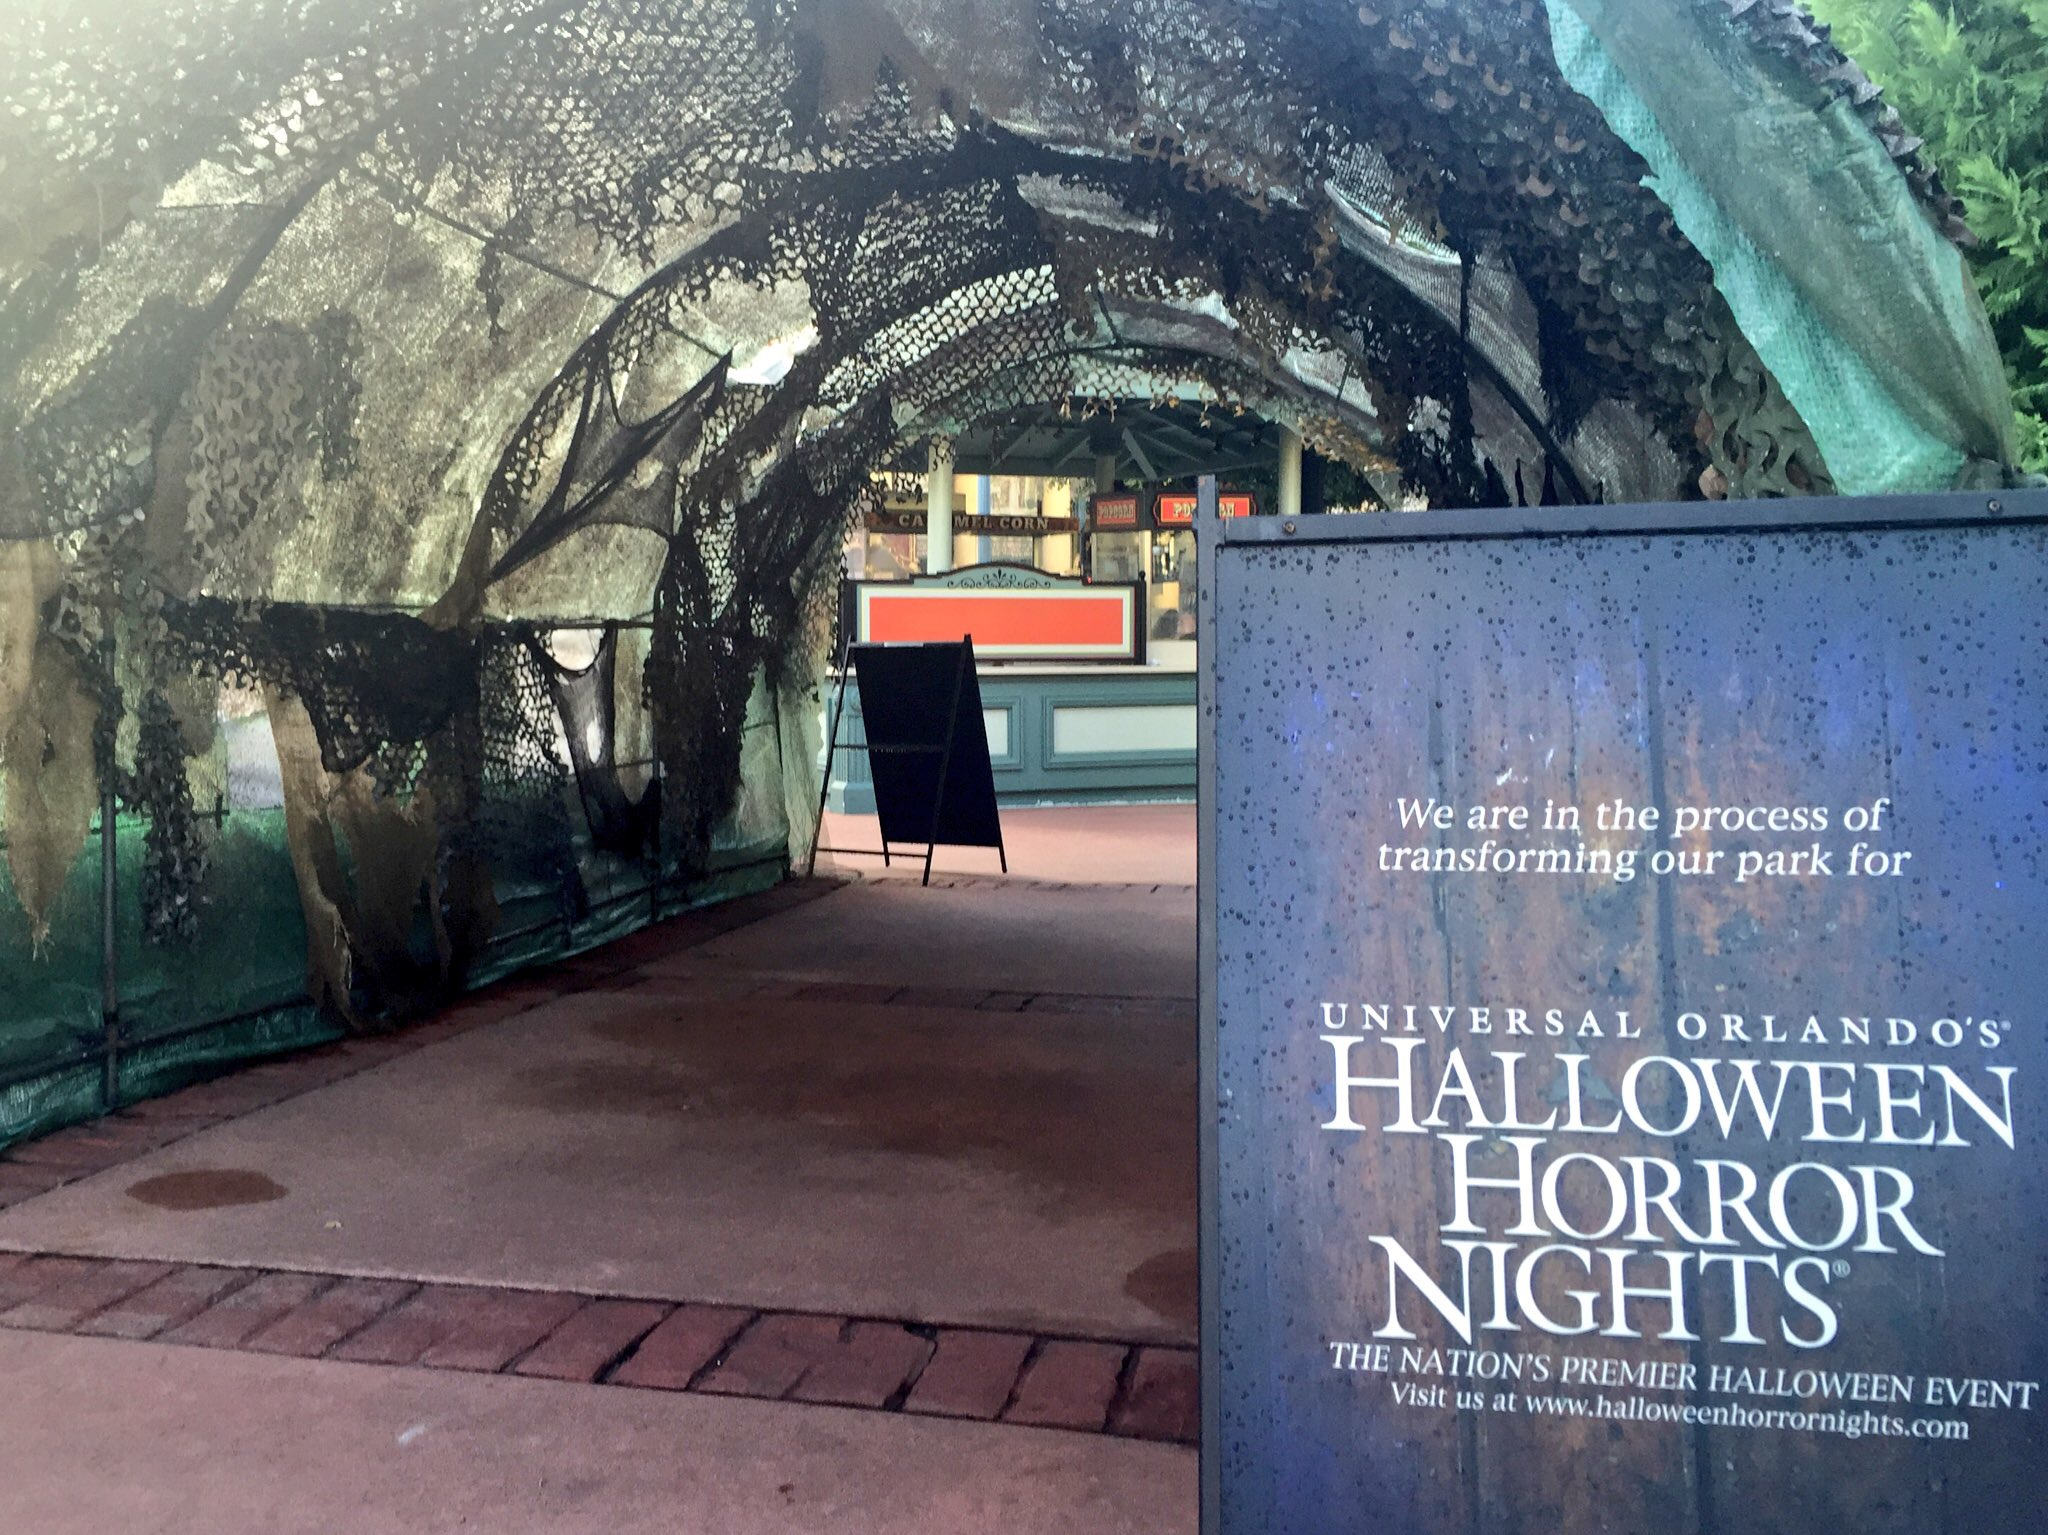 dani's best week ever september 1, 2016: halloween horror nights